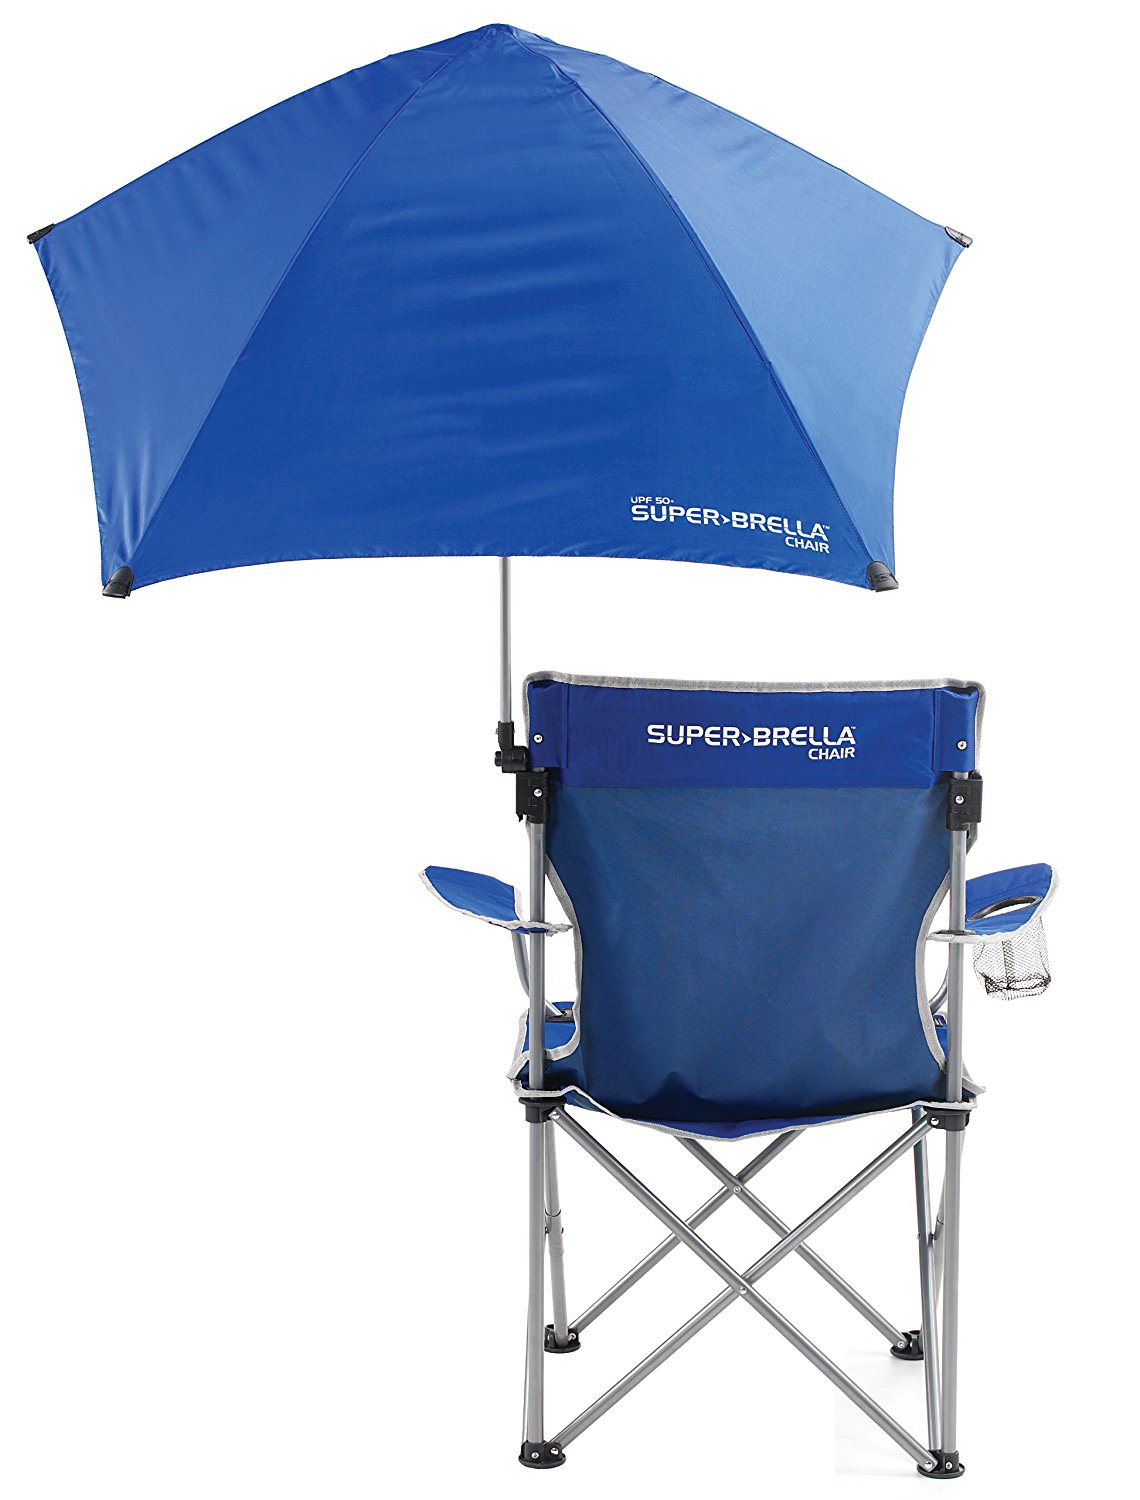 Camping Chair With Canopy Us 49 Outdoor Quik Shade Adjustable Canopy Folding Camp Chair Portable Fishing Camping Reclining Lounging Chair Heavy Duty 100kg In Fishing Chairs